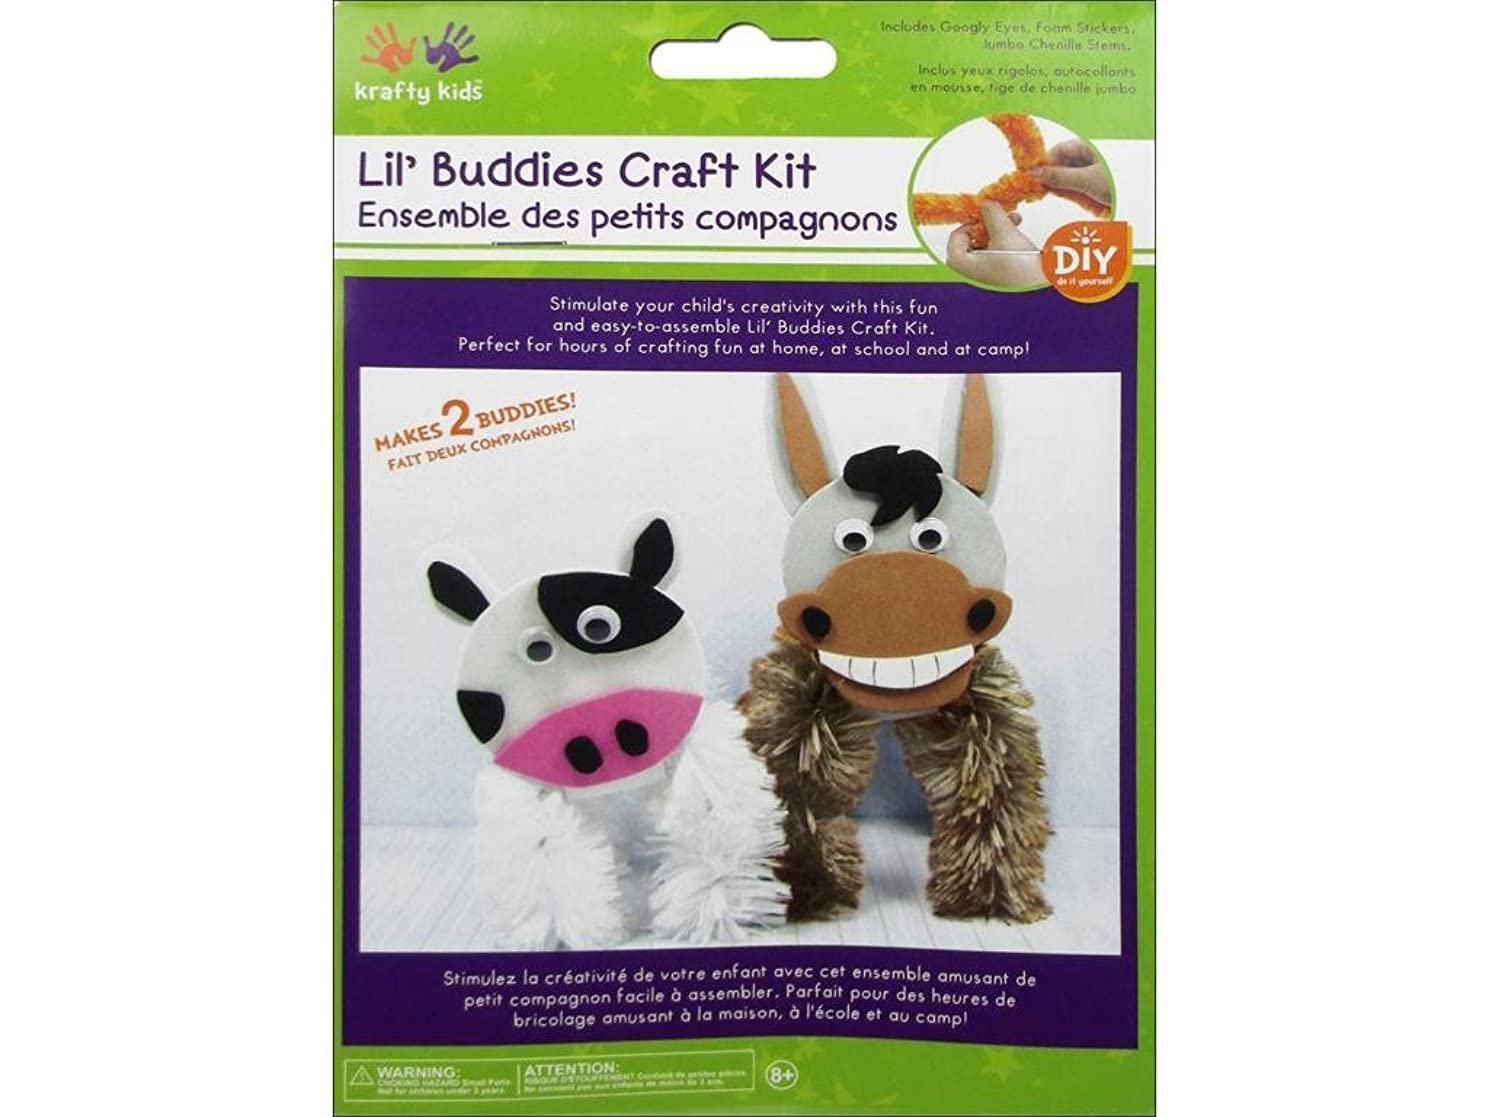 Multicraft Krafty Kids DIY Craft Kit Lil' Buddies Donkey/Cow